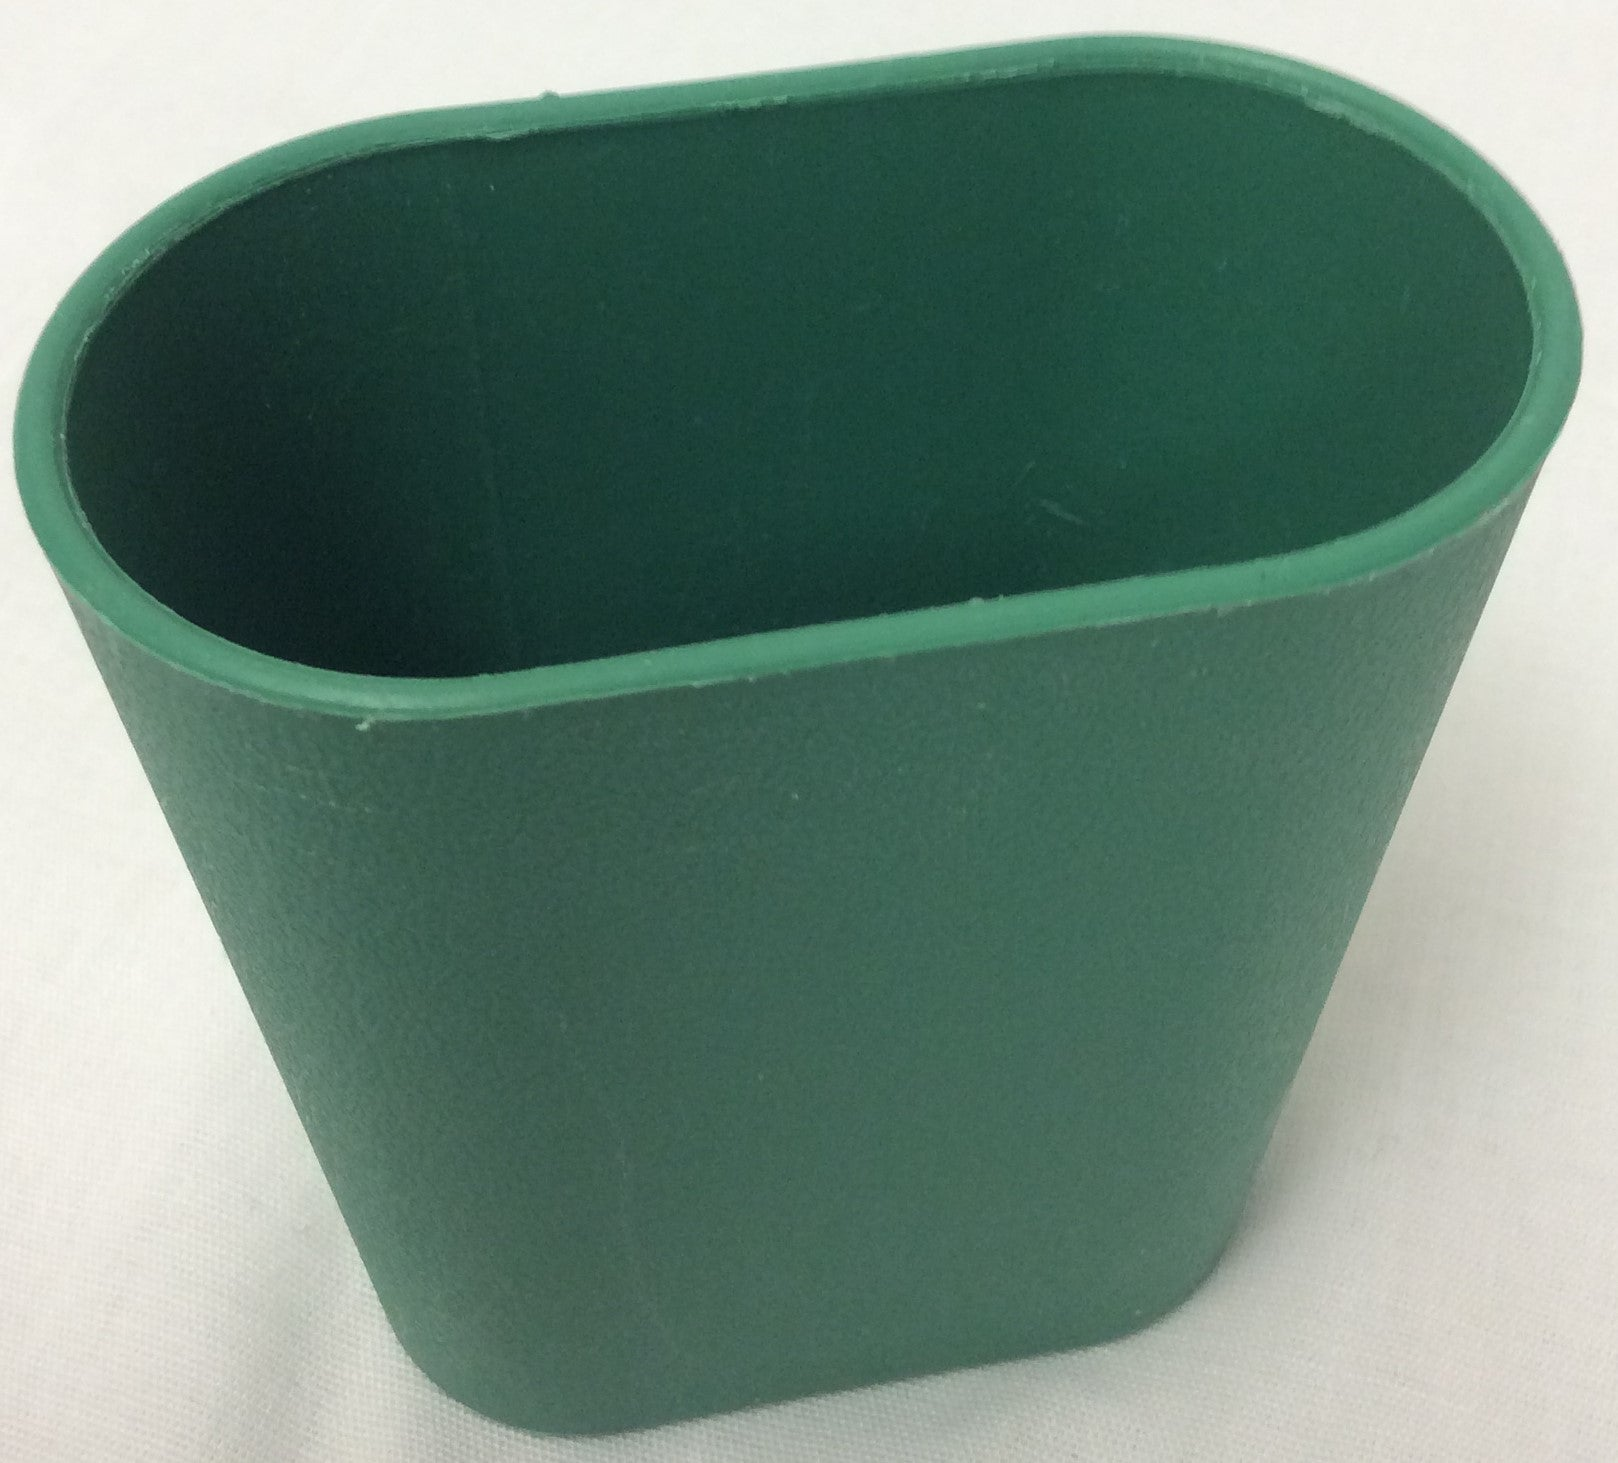 Dice cup plastic green - Spinettis Gaming